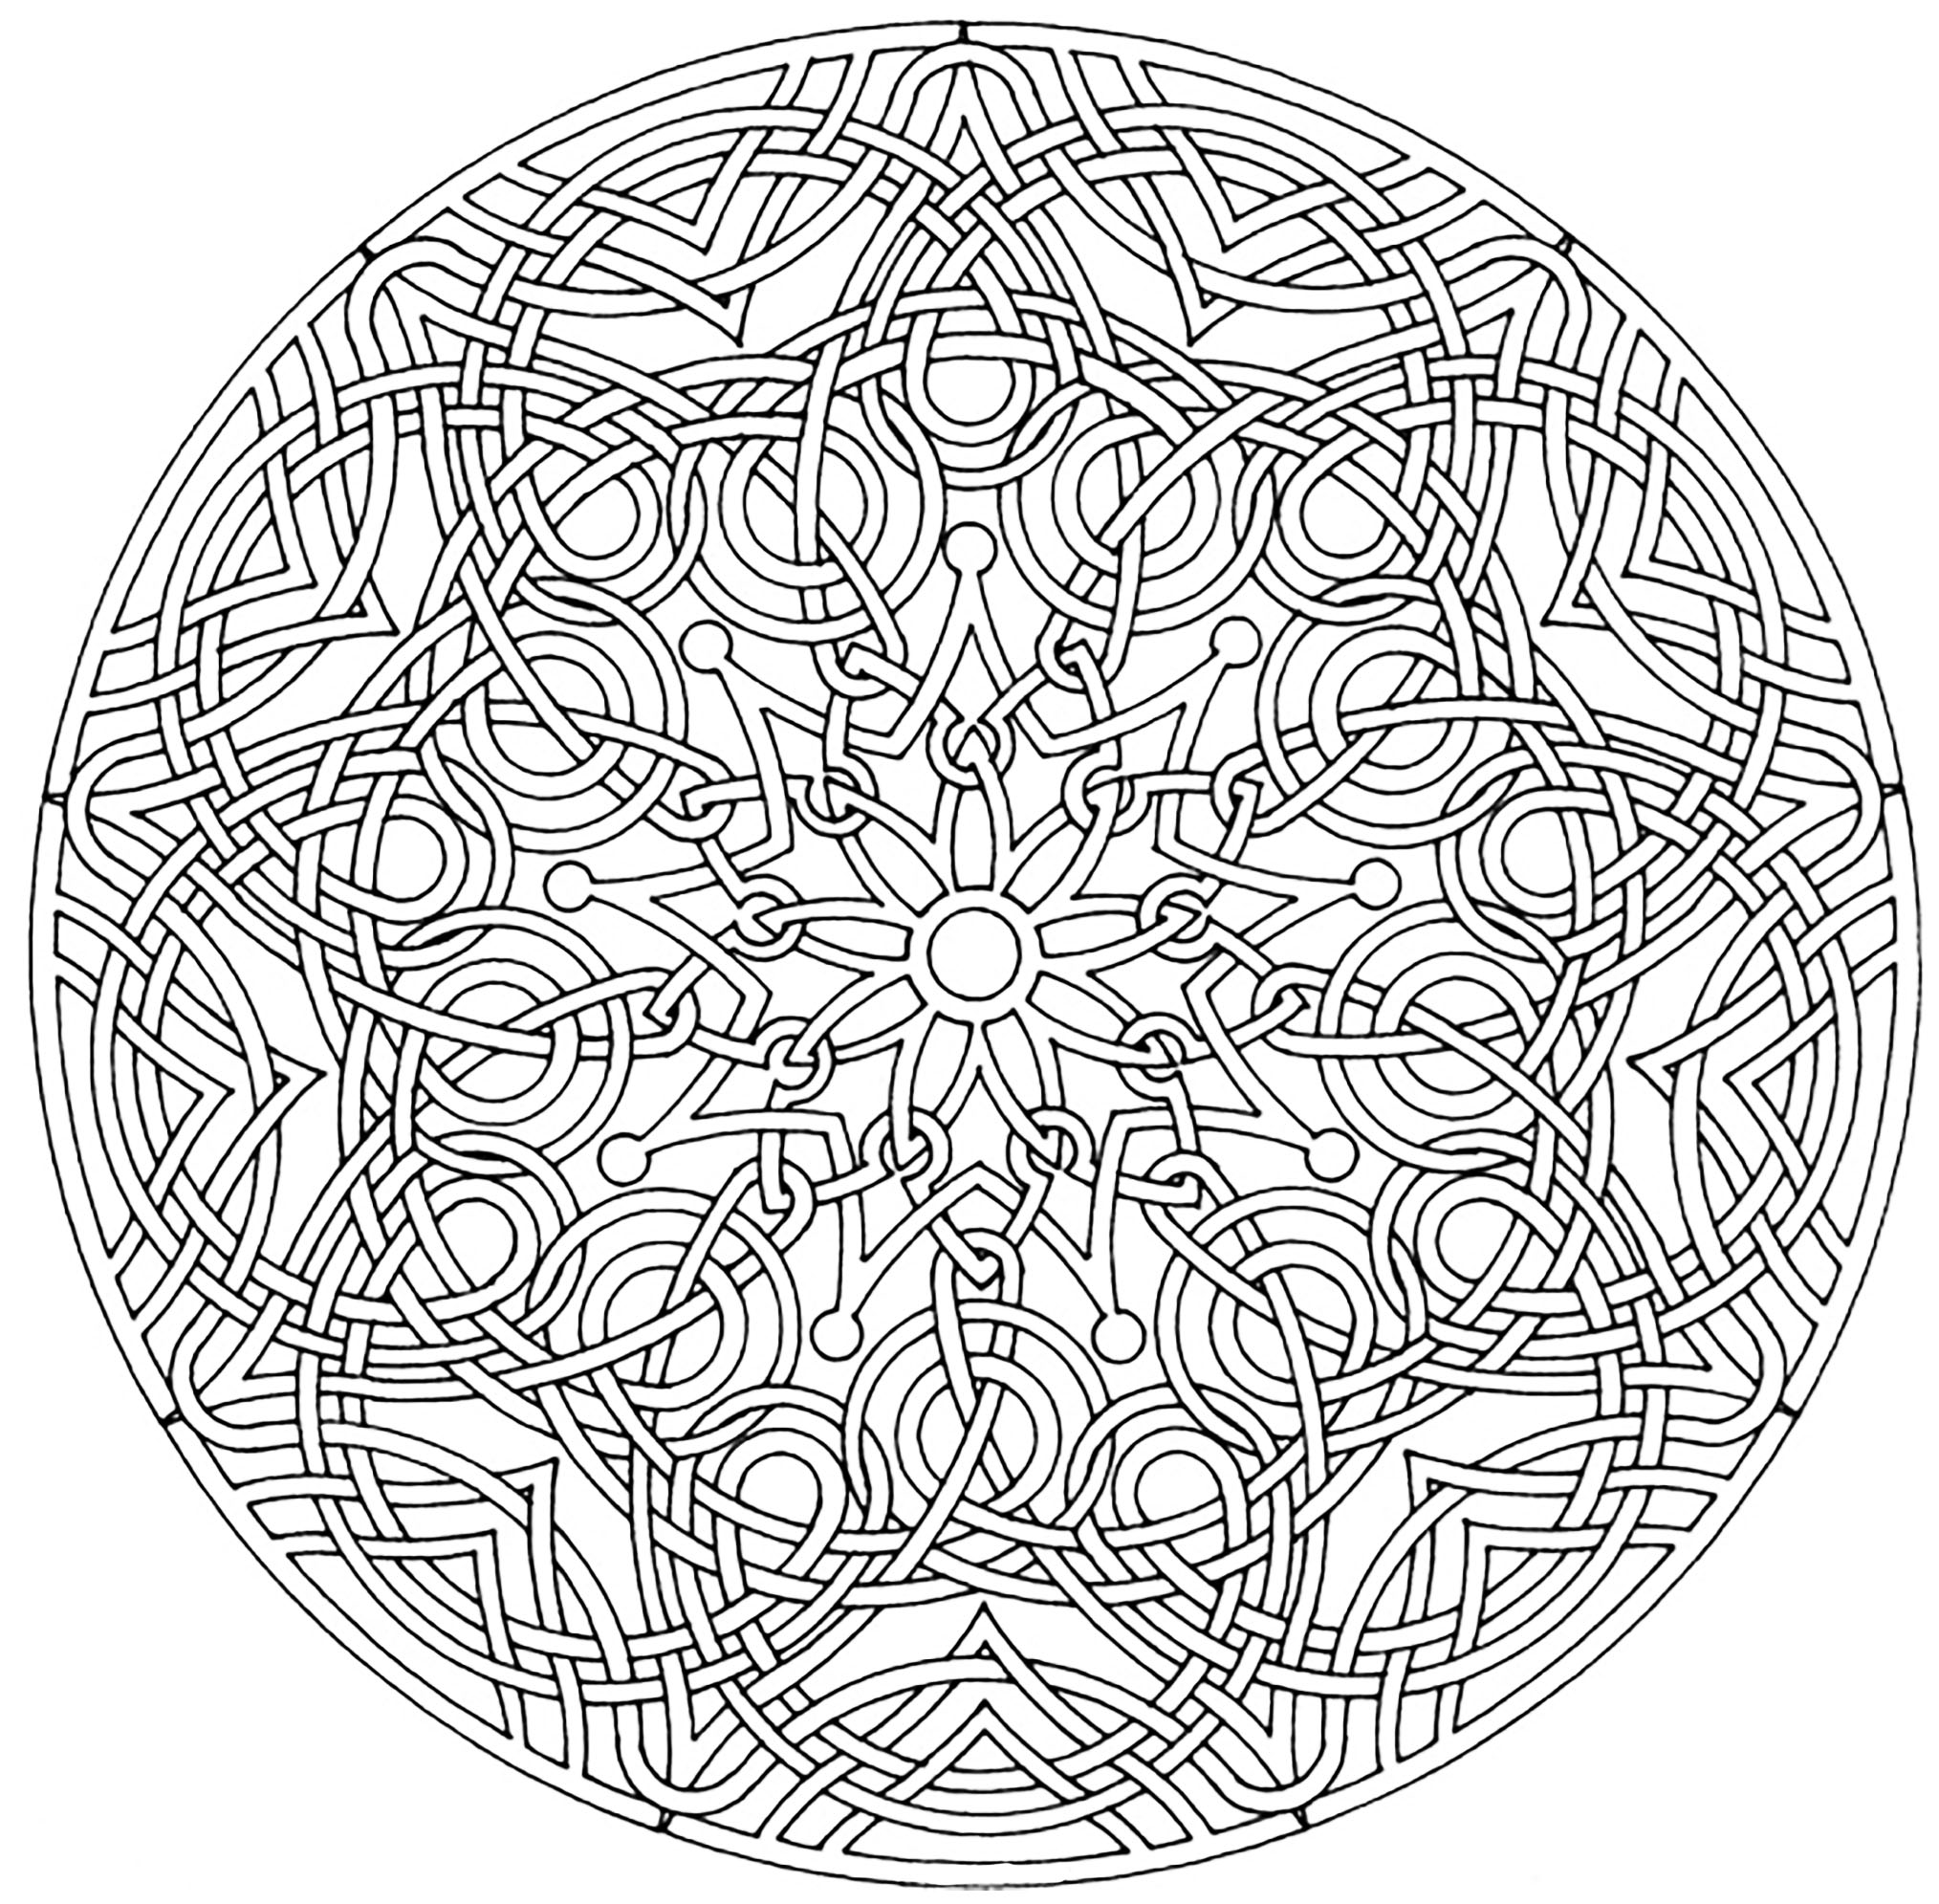 free printable hard coloring pages for adults - mandalas coloring pages for adults coloring page